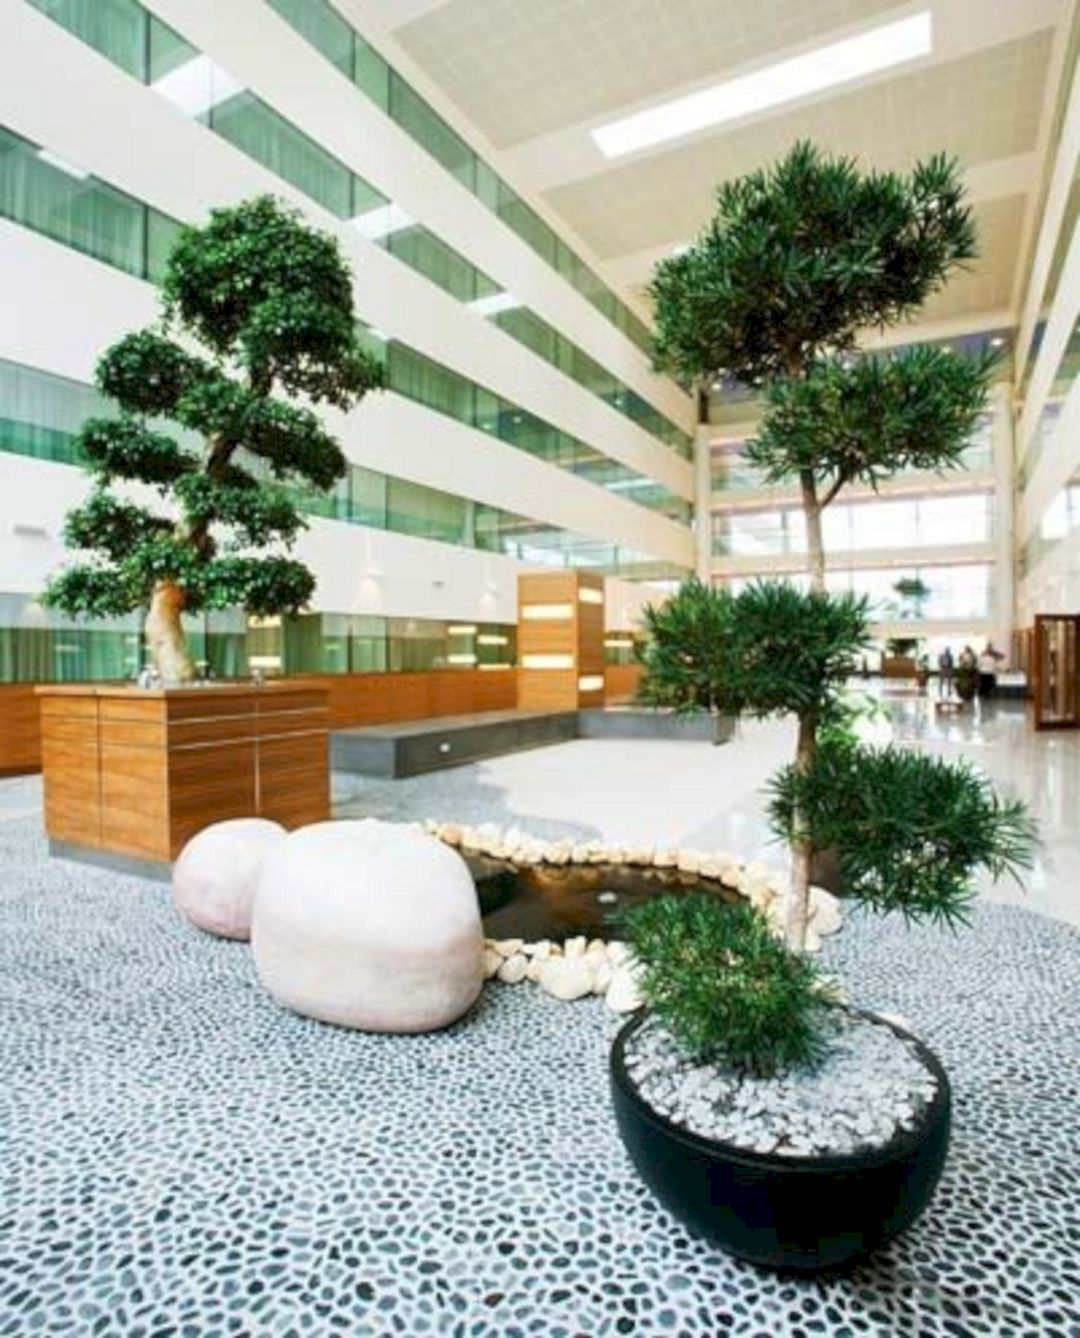 Charmant Marvelous 25+ Amazing Minimalist Indoor Zen Garden Design Ideas  Https://decorathing.